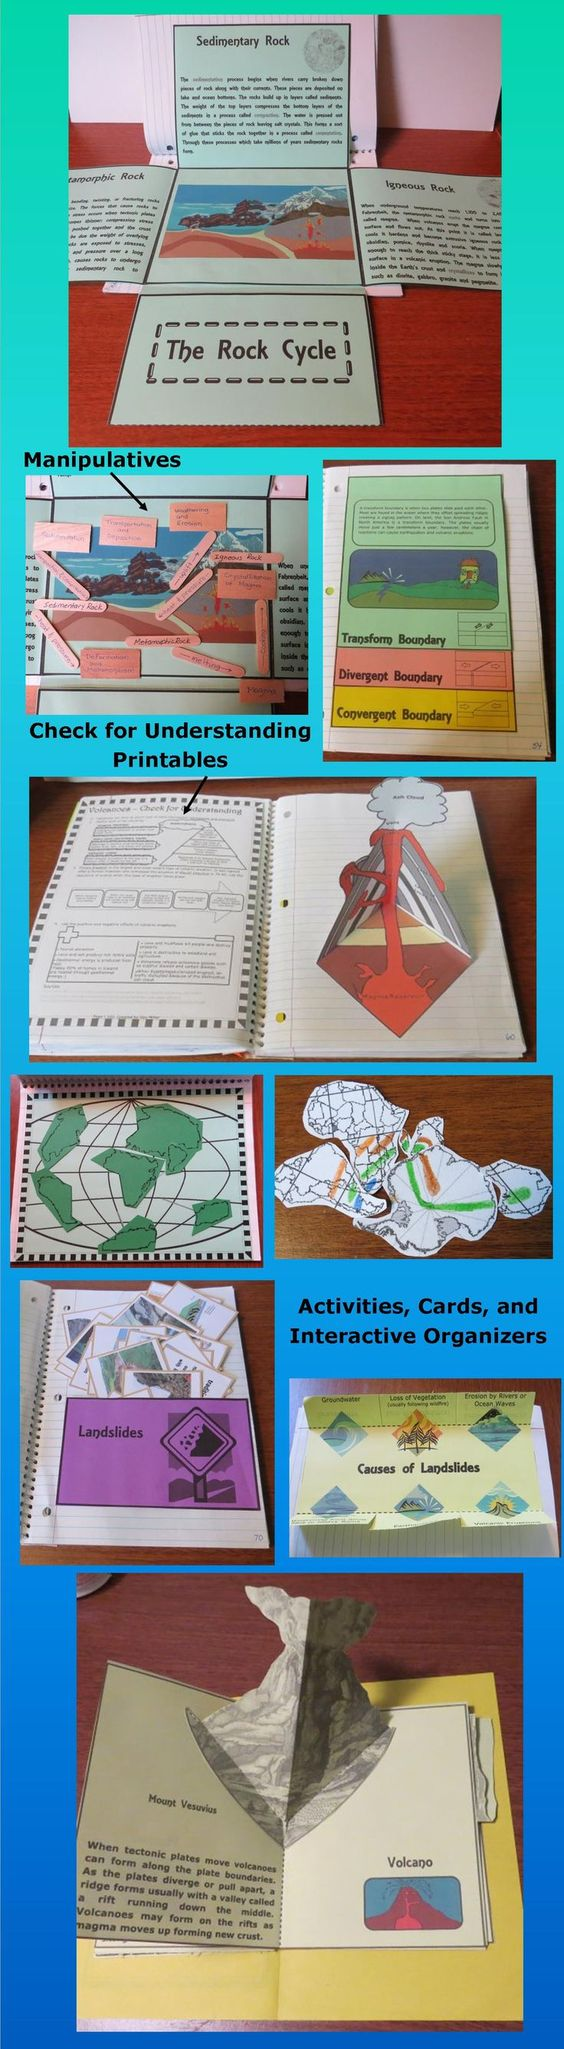 Grade 6 Science Worksheets Pdf Earths Systems Geology Interactive Organizers  Science  Color By Number Addition Worksheets Pdf with Mountain Math 5th Grade Worksheet Earths Systems Interactive Organizers Contains Everything You Need To  Create Interactive Science Notebooks For Your Geology Adding Mixed Fractions Worksheet Pdf